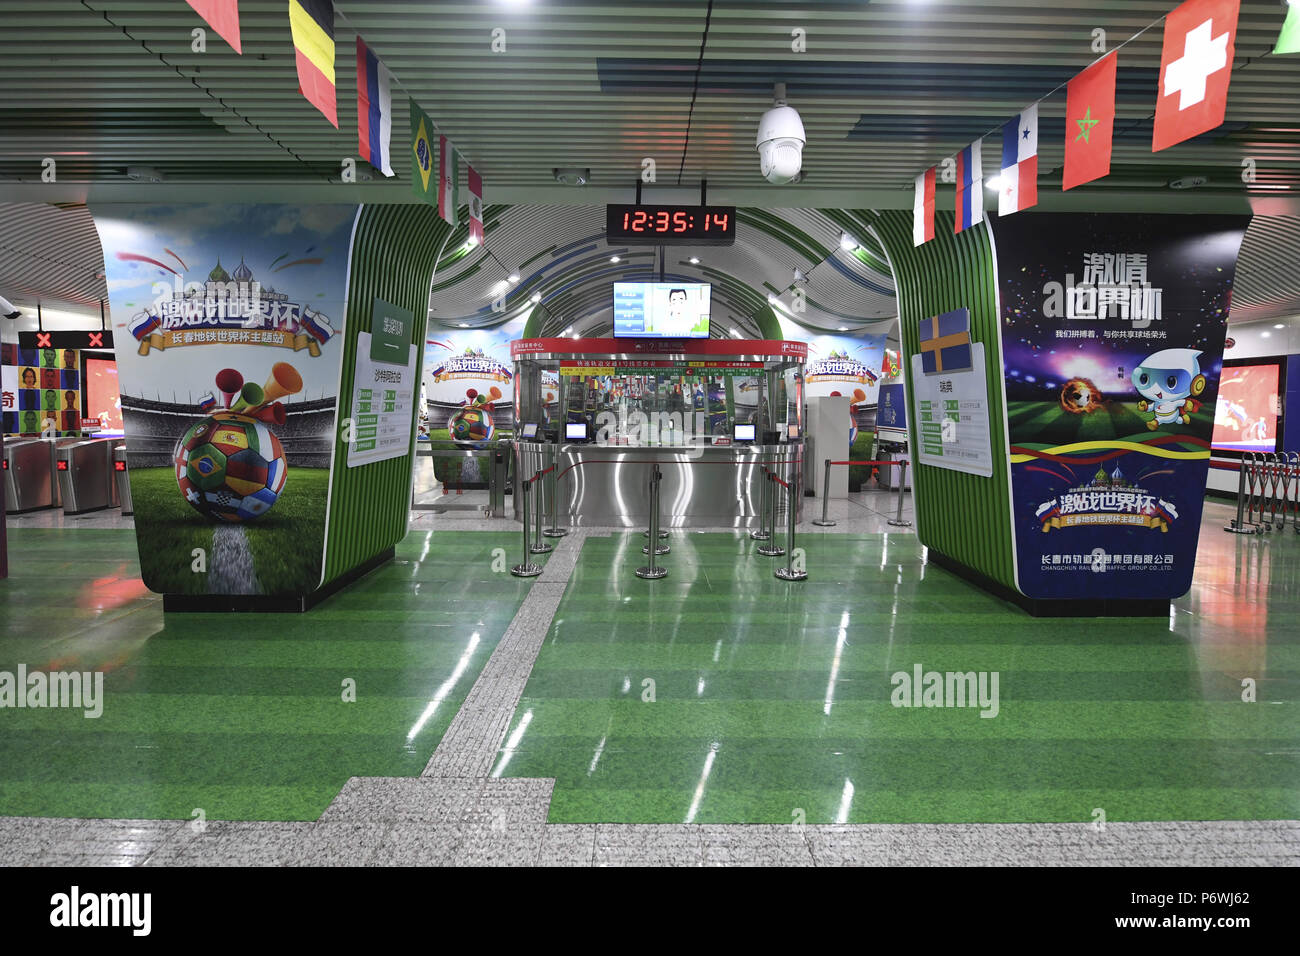 Changchun, Changchun, China. 3rd July, 2018. Changchun, CHINA-The World Cup themed subway station in Changchun, northeast China's Jilin Province. Credit: SIPA Asia/ZUMA Wire/Alamy Live News - Stock Image